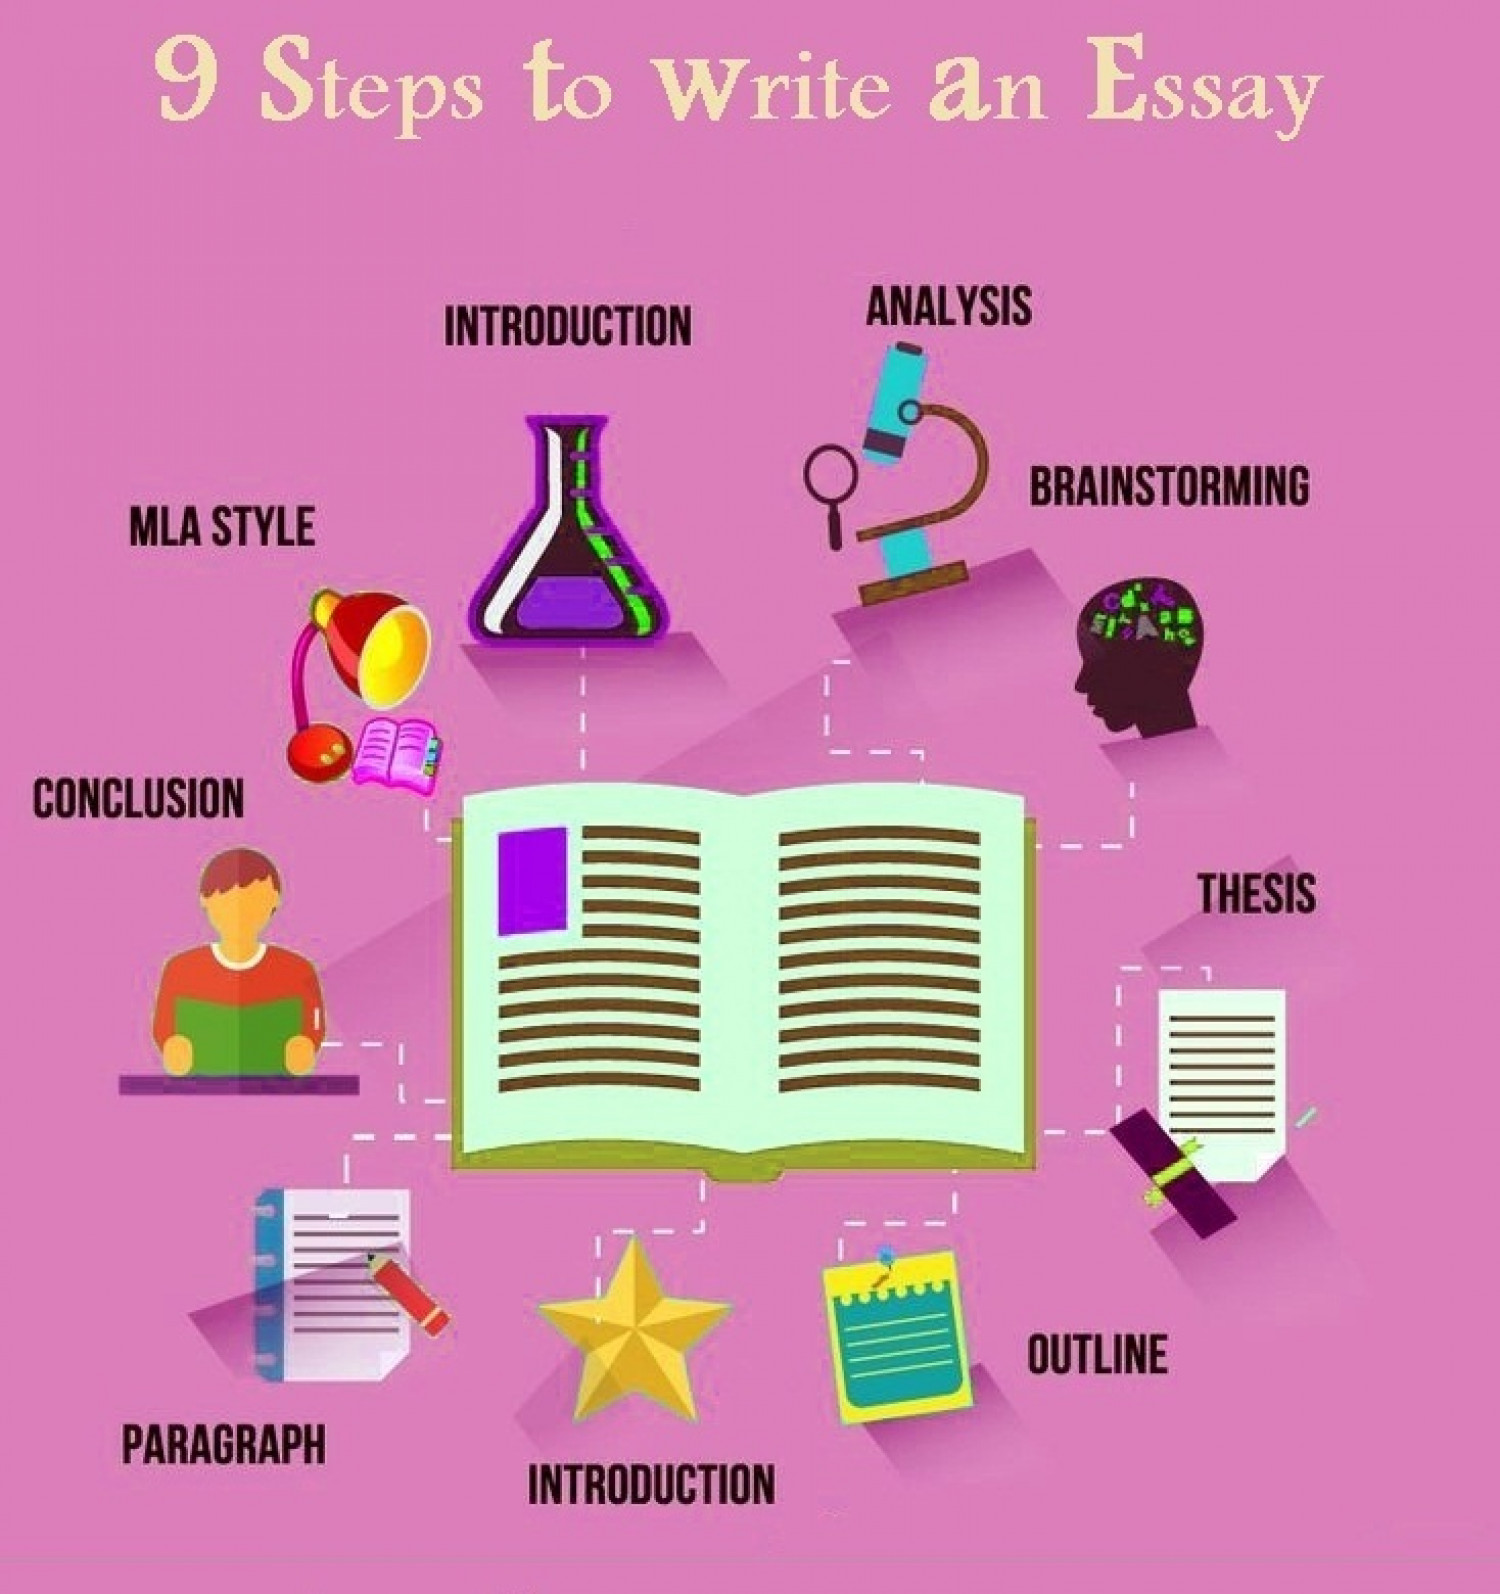 steps to write a good essay How to write a summary in 8 easy steps  good book summaries also capture essential elements about  how do i write an essay where i summarize my eating.